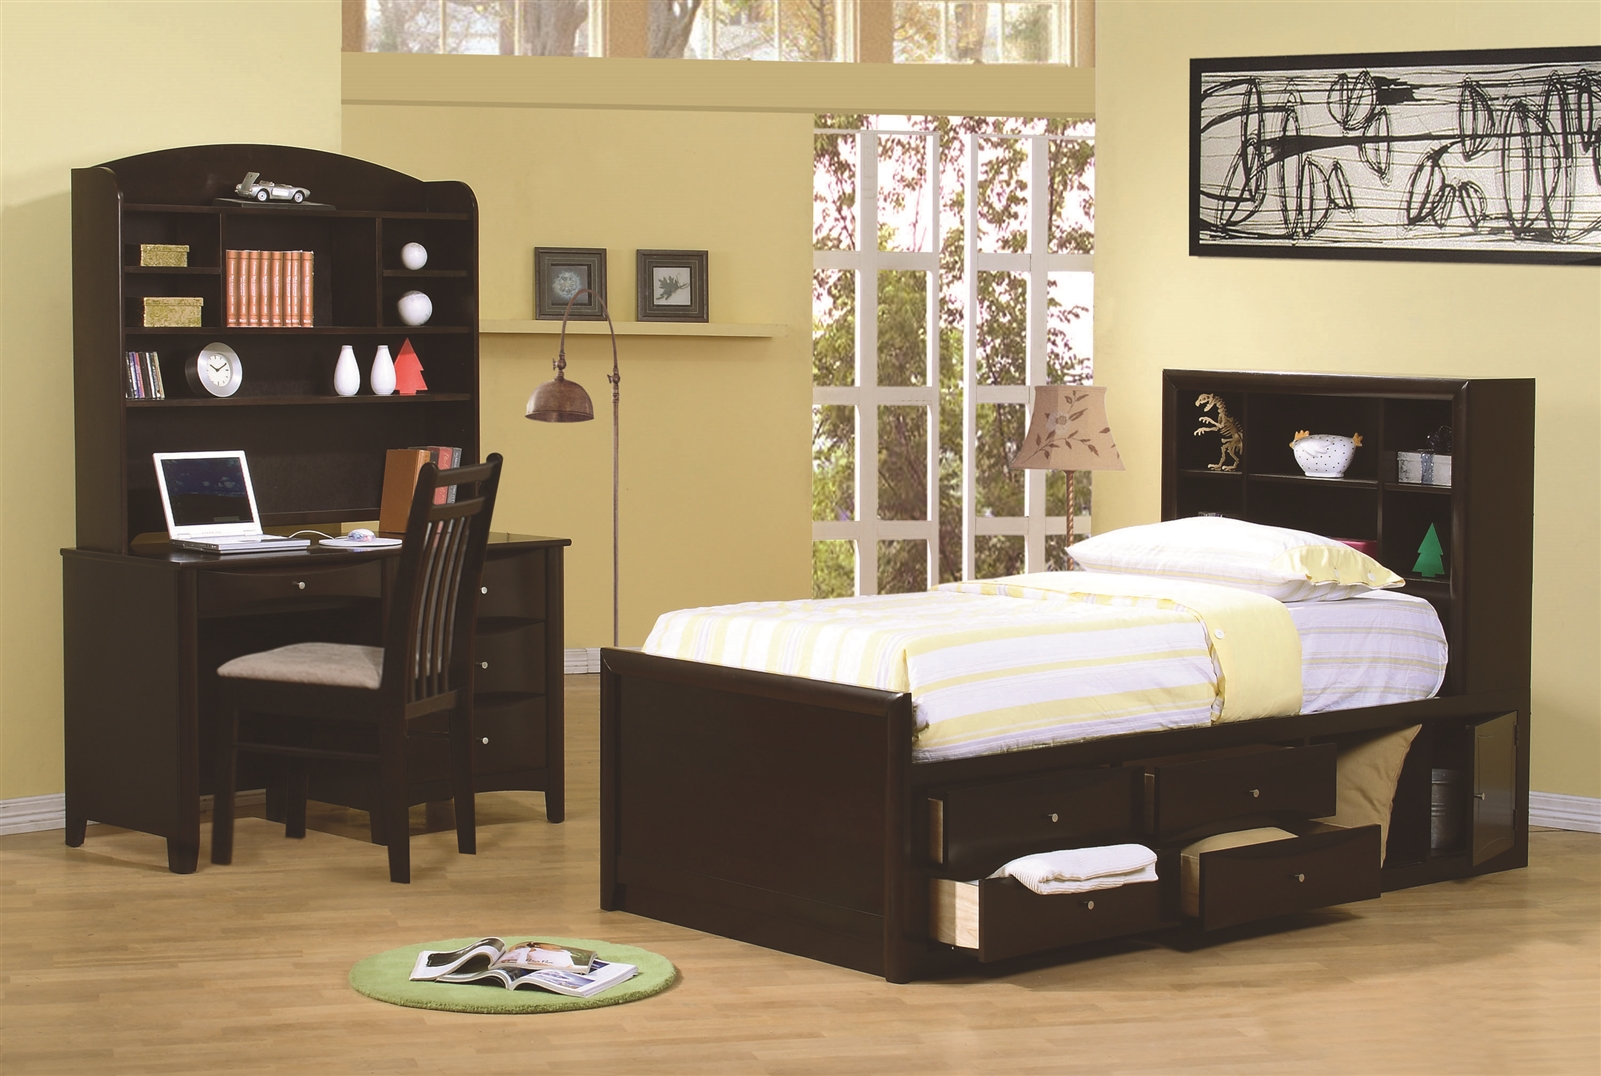 Bookcase Headboard phoenix twin chest bed w/ bookcase headboard